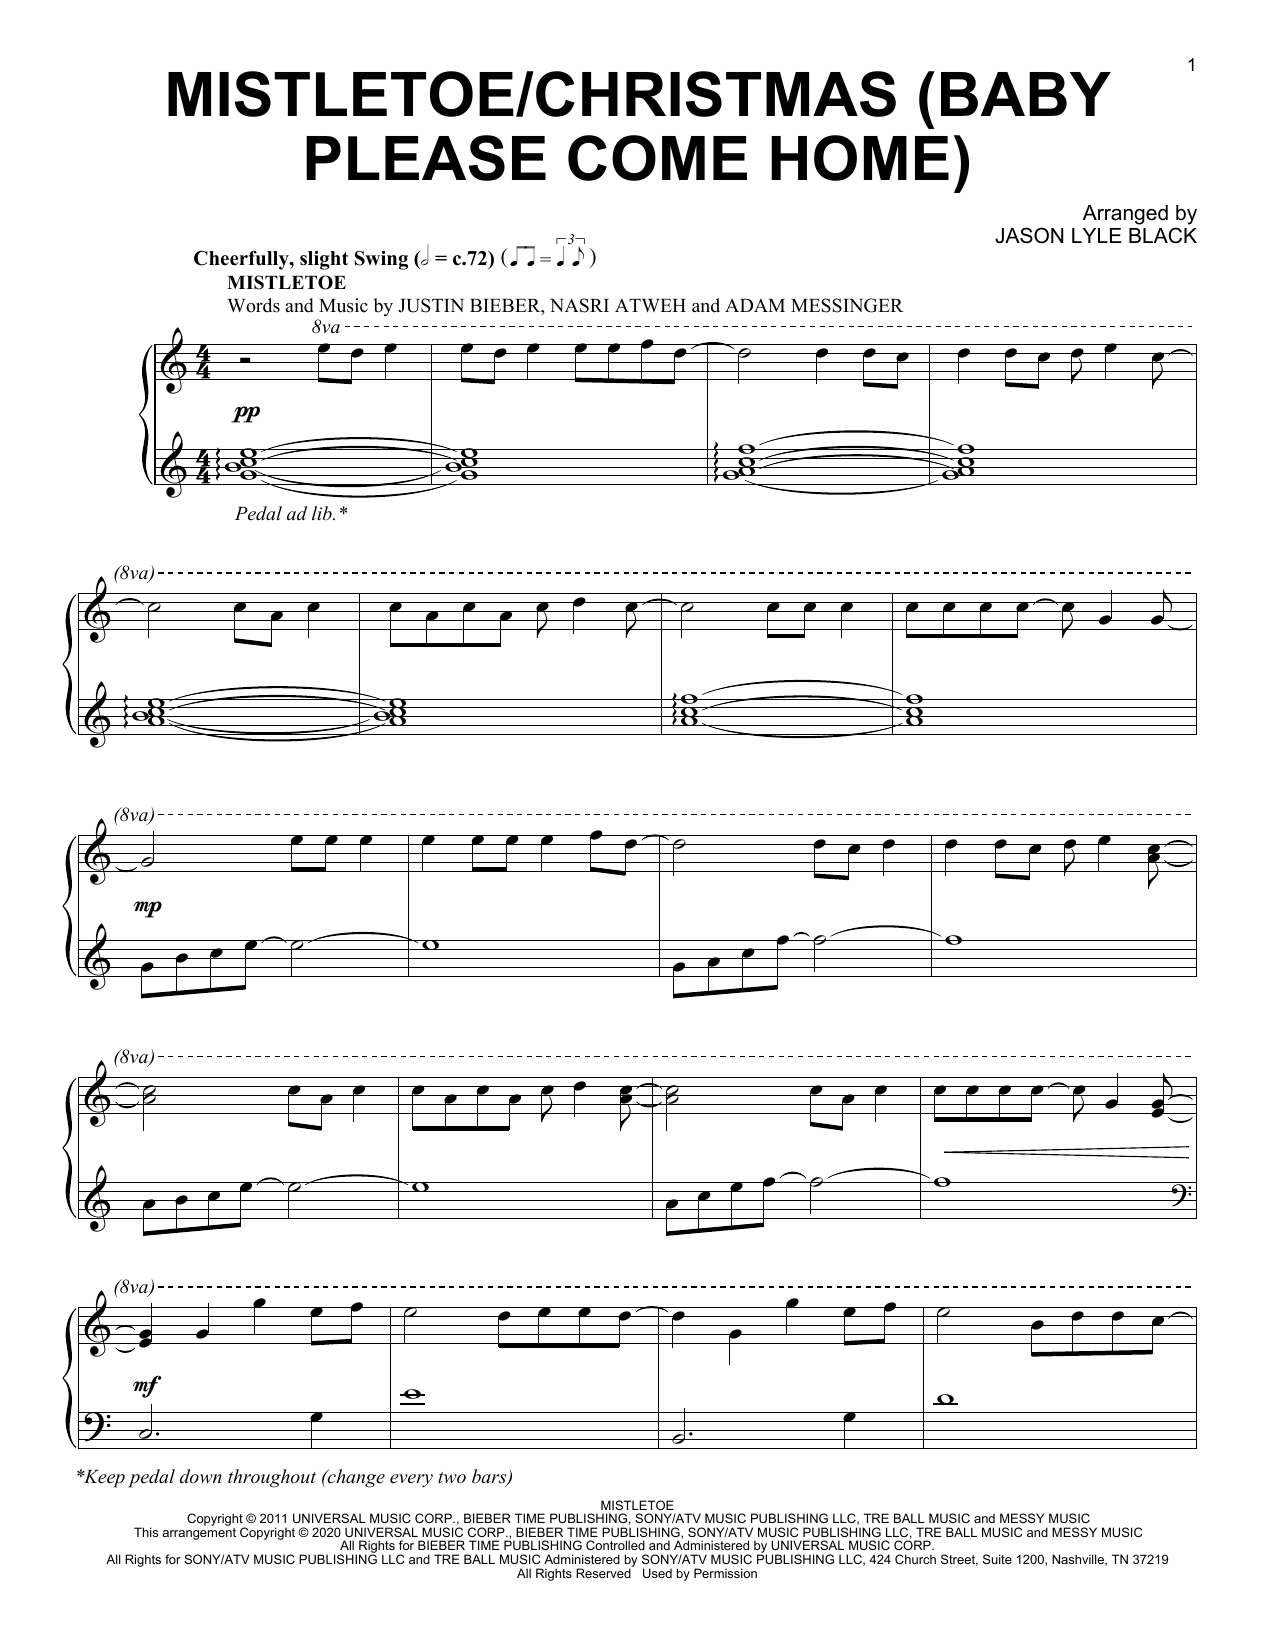 Jason Lyle Black Mistletoe/Christmas (Baby Please Come Home) sheet music notes and chords. Download Printable PDF.